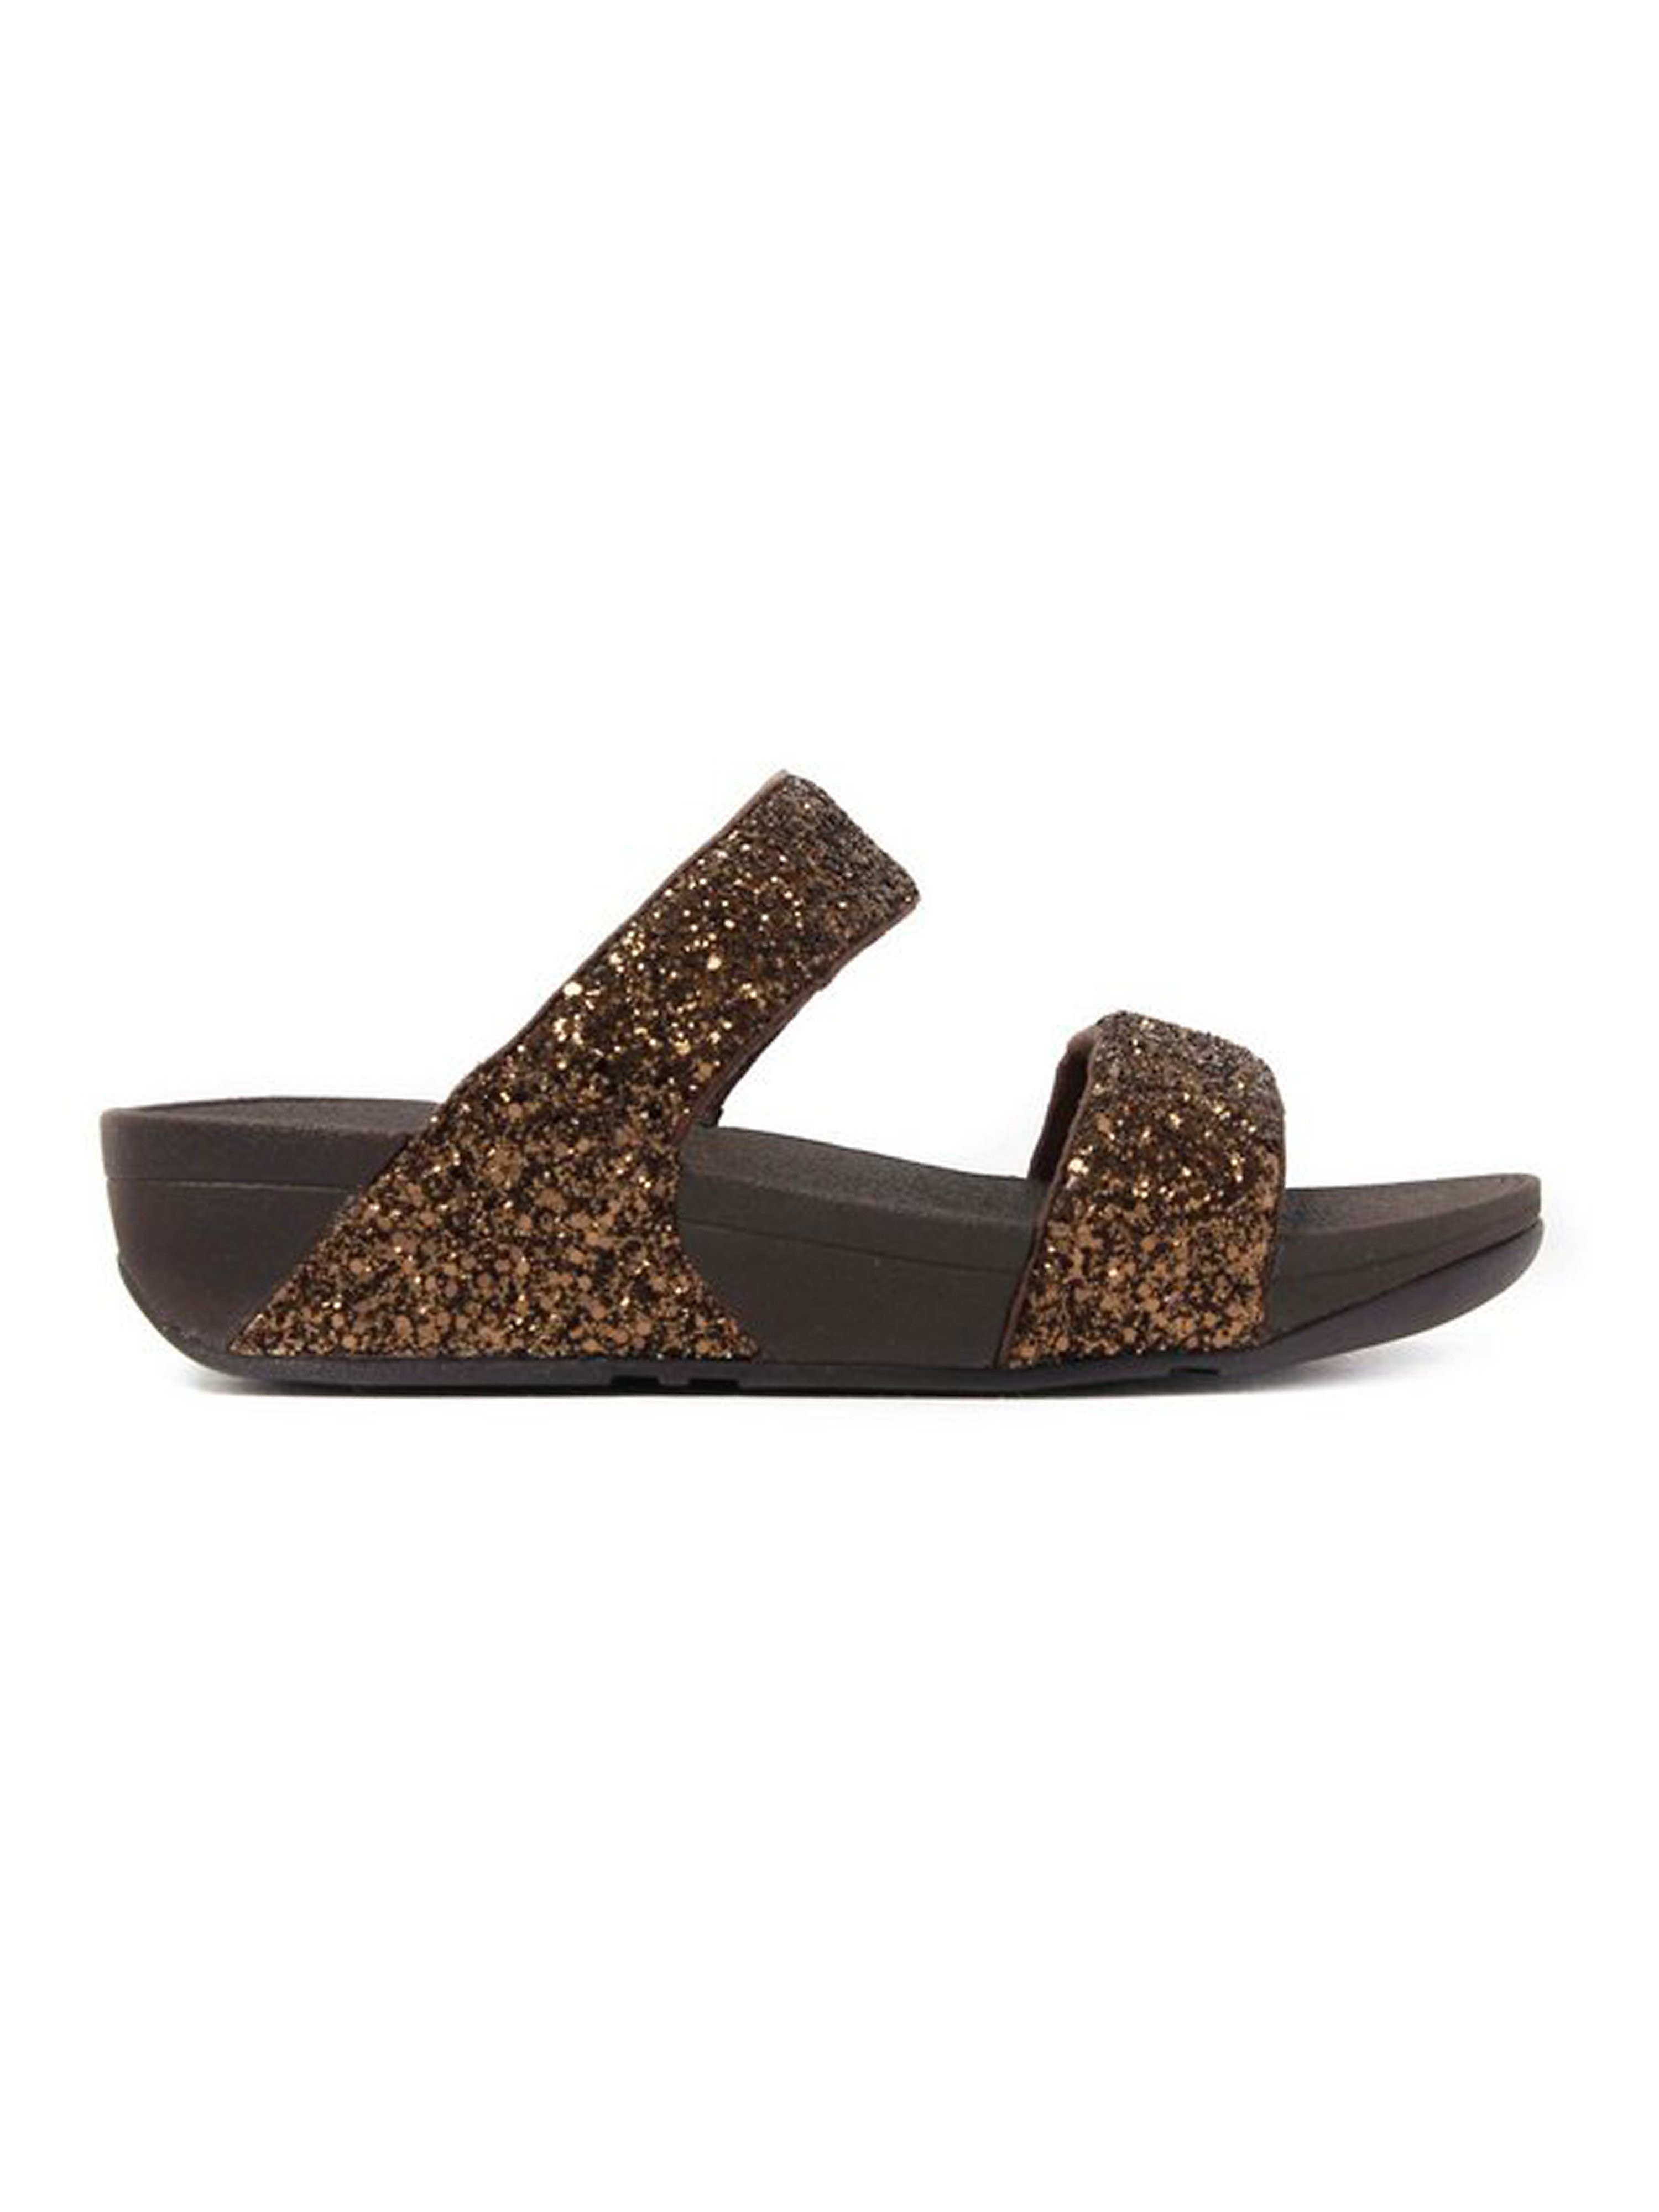 FitFlop Women's Glitterball Slide Sandals Bronze